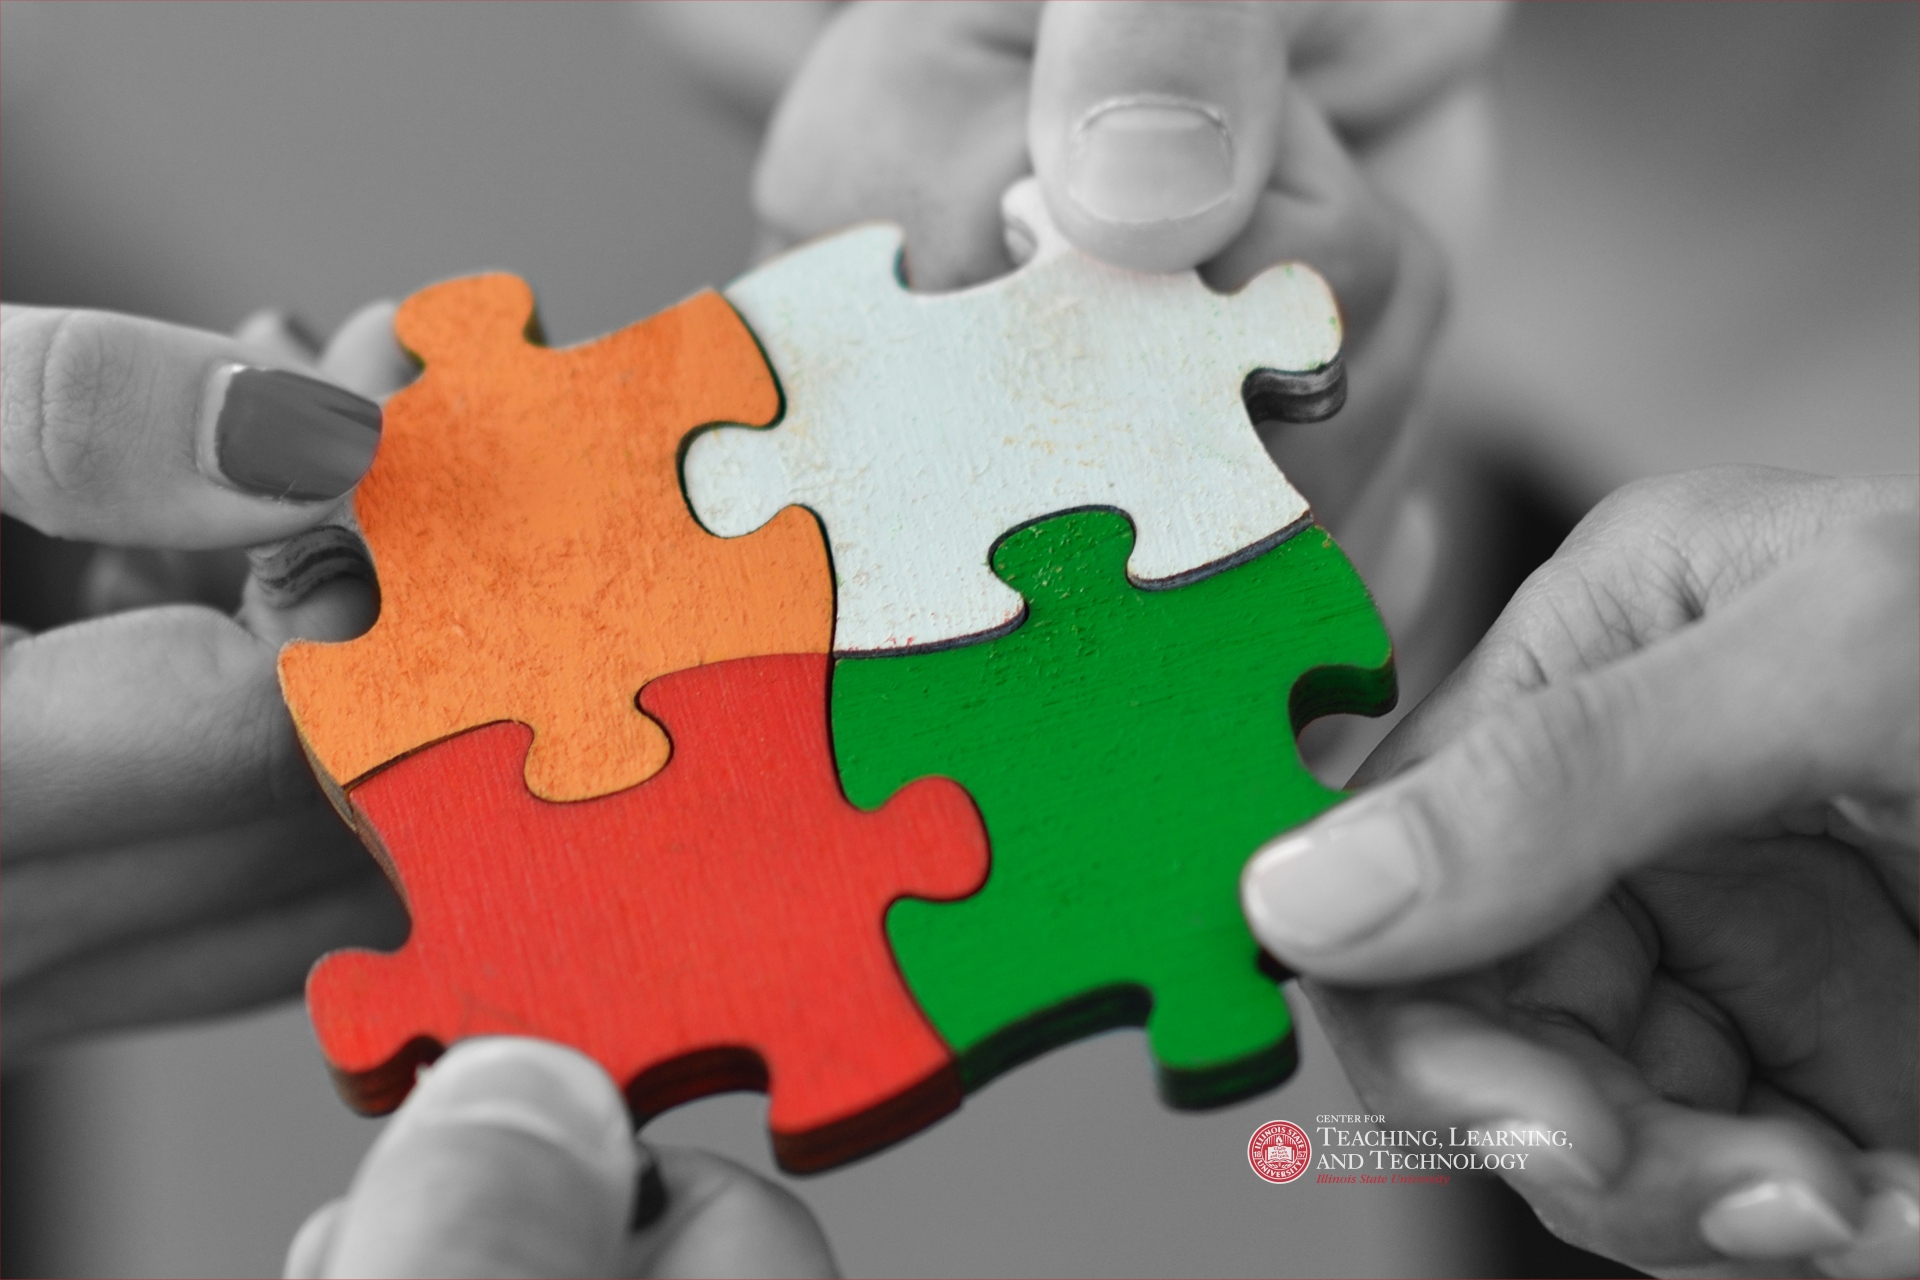 Hands holding puzzle pieces